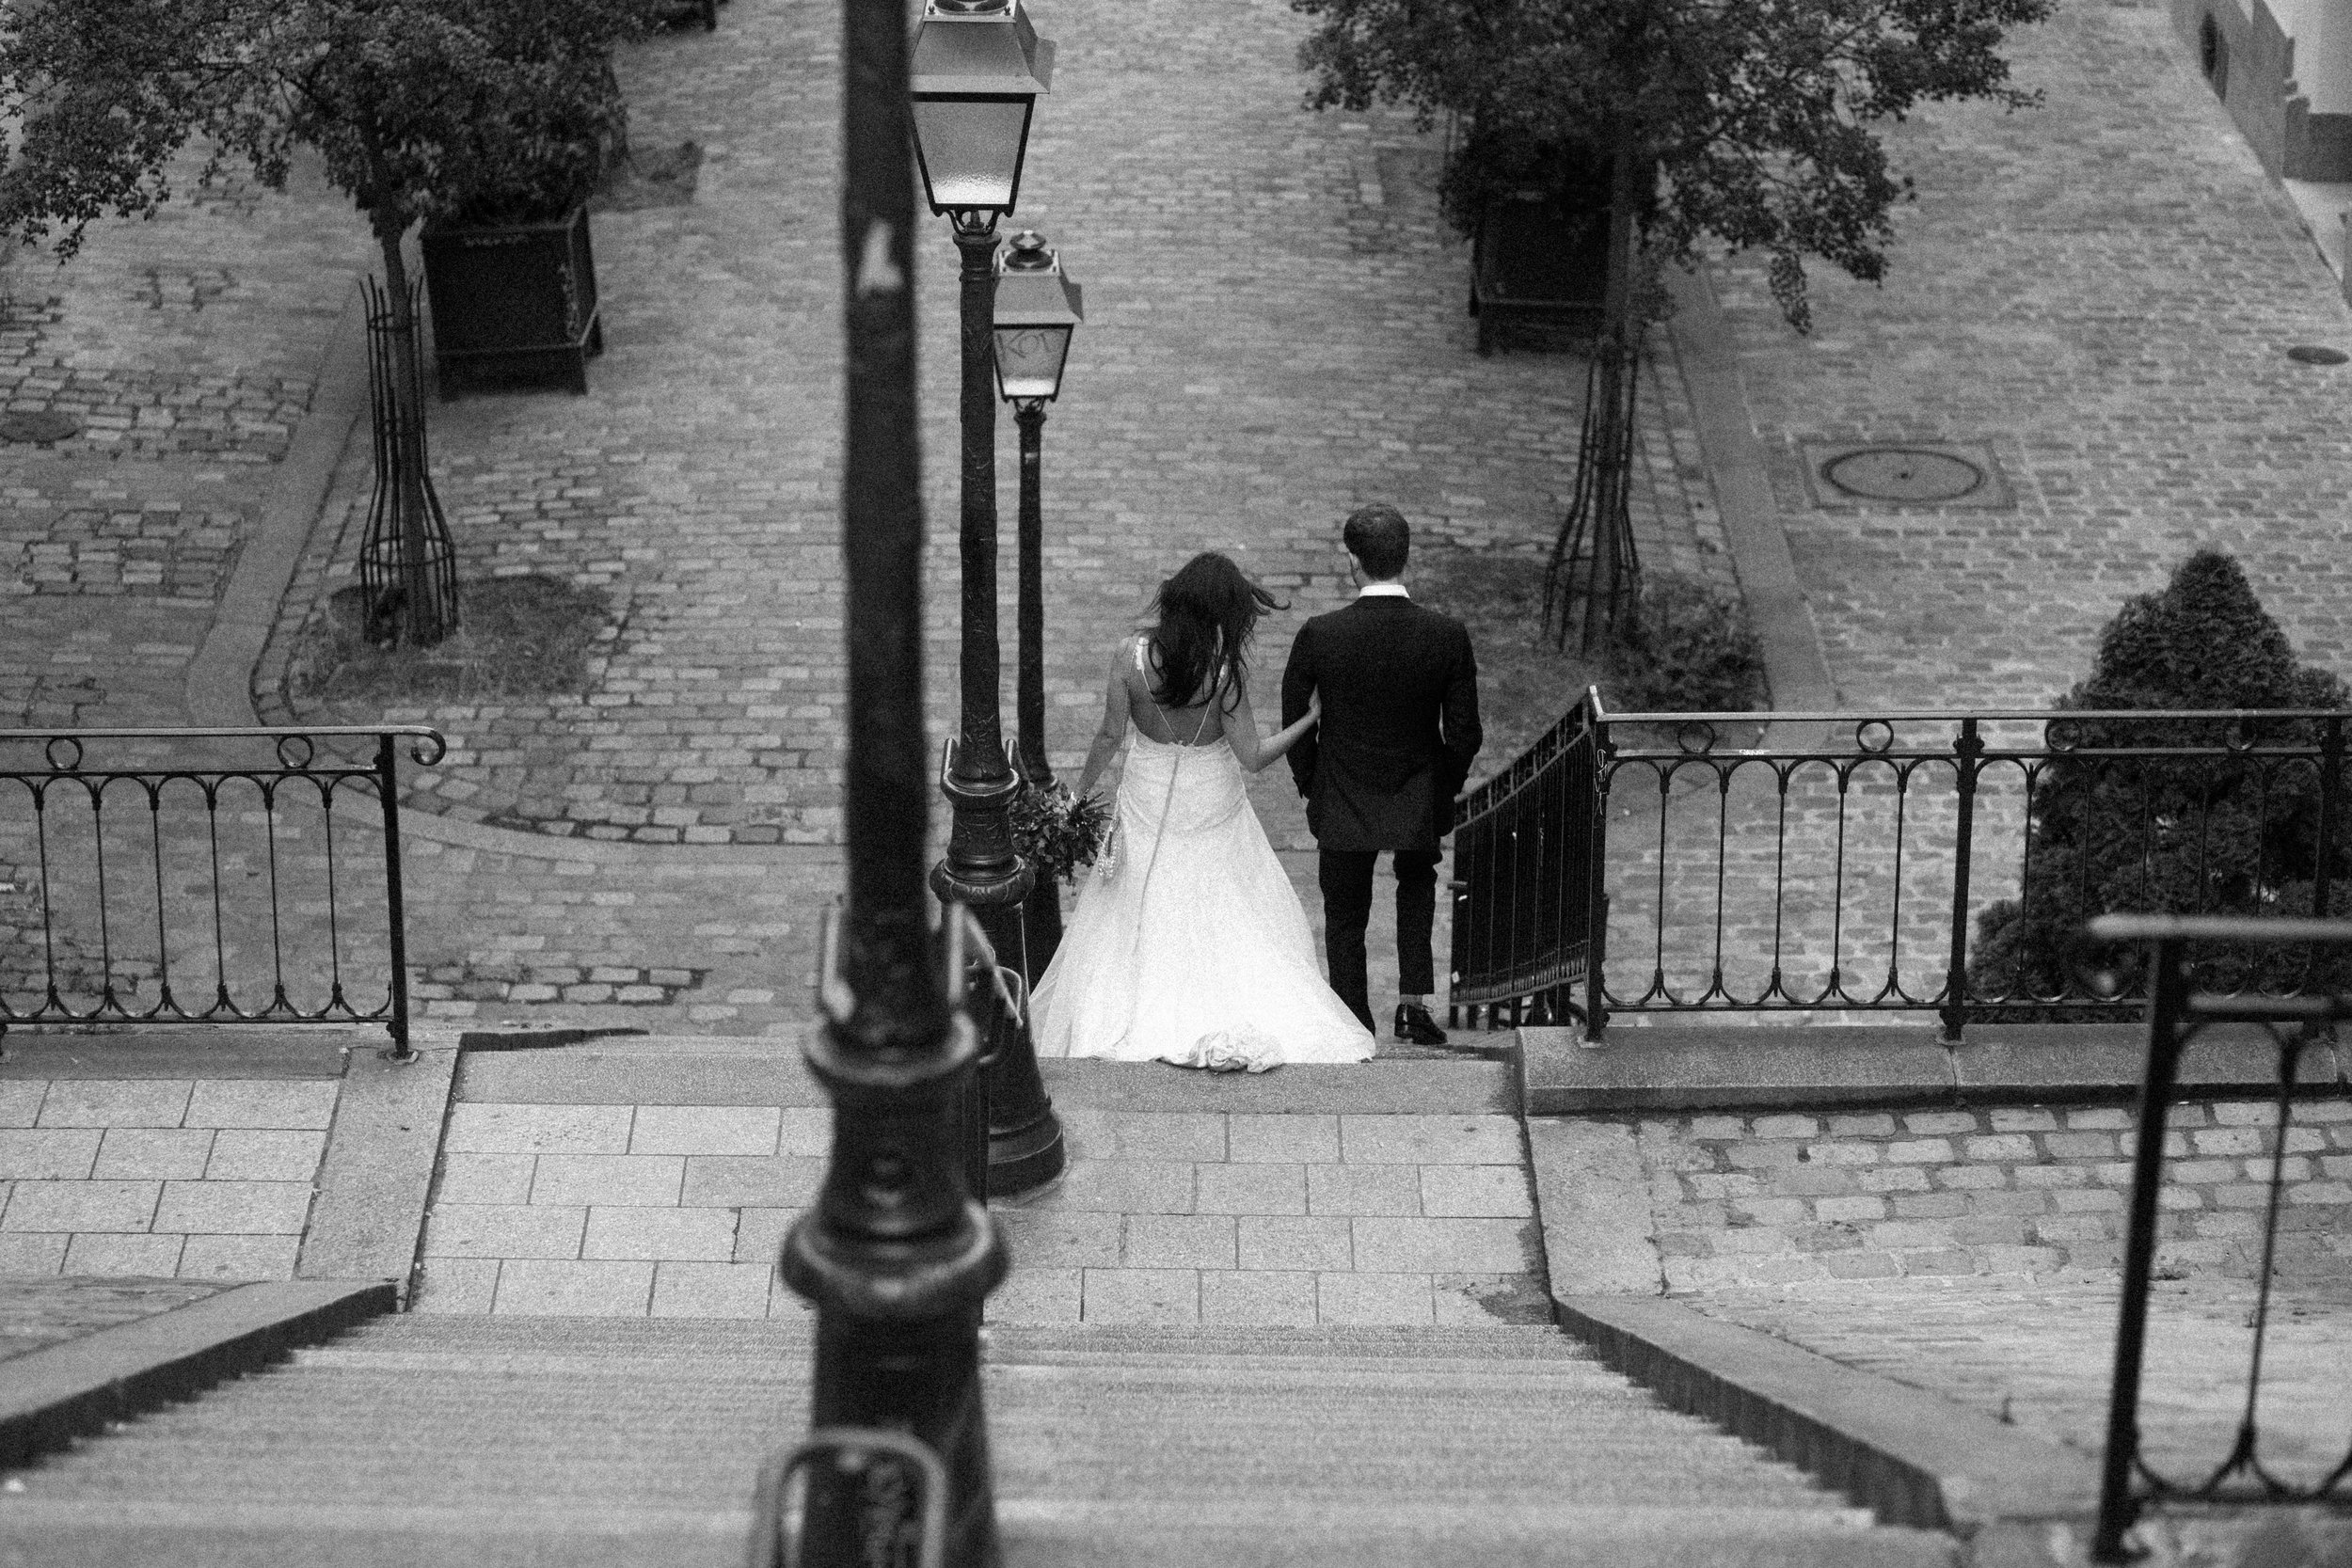 paris wedding photographer craig george hannah and mitch elopment-173.jpg